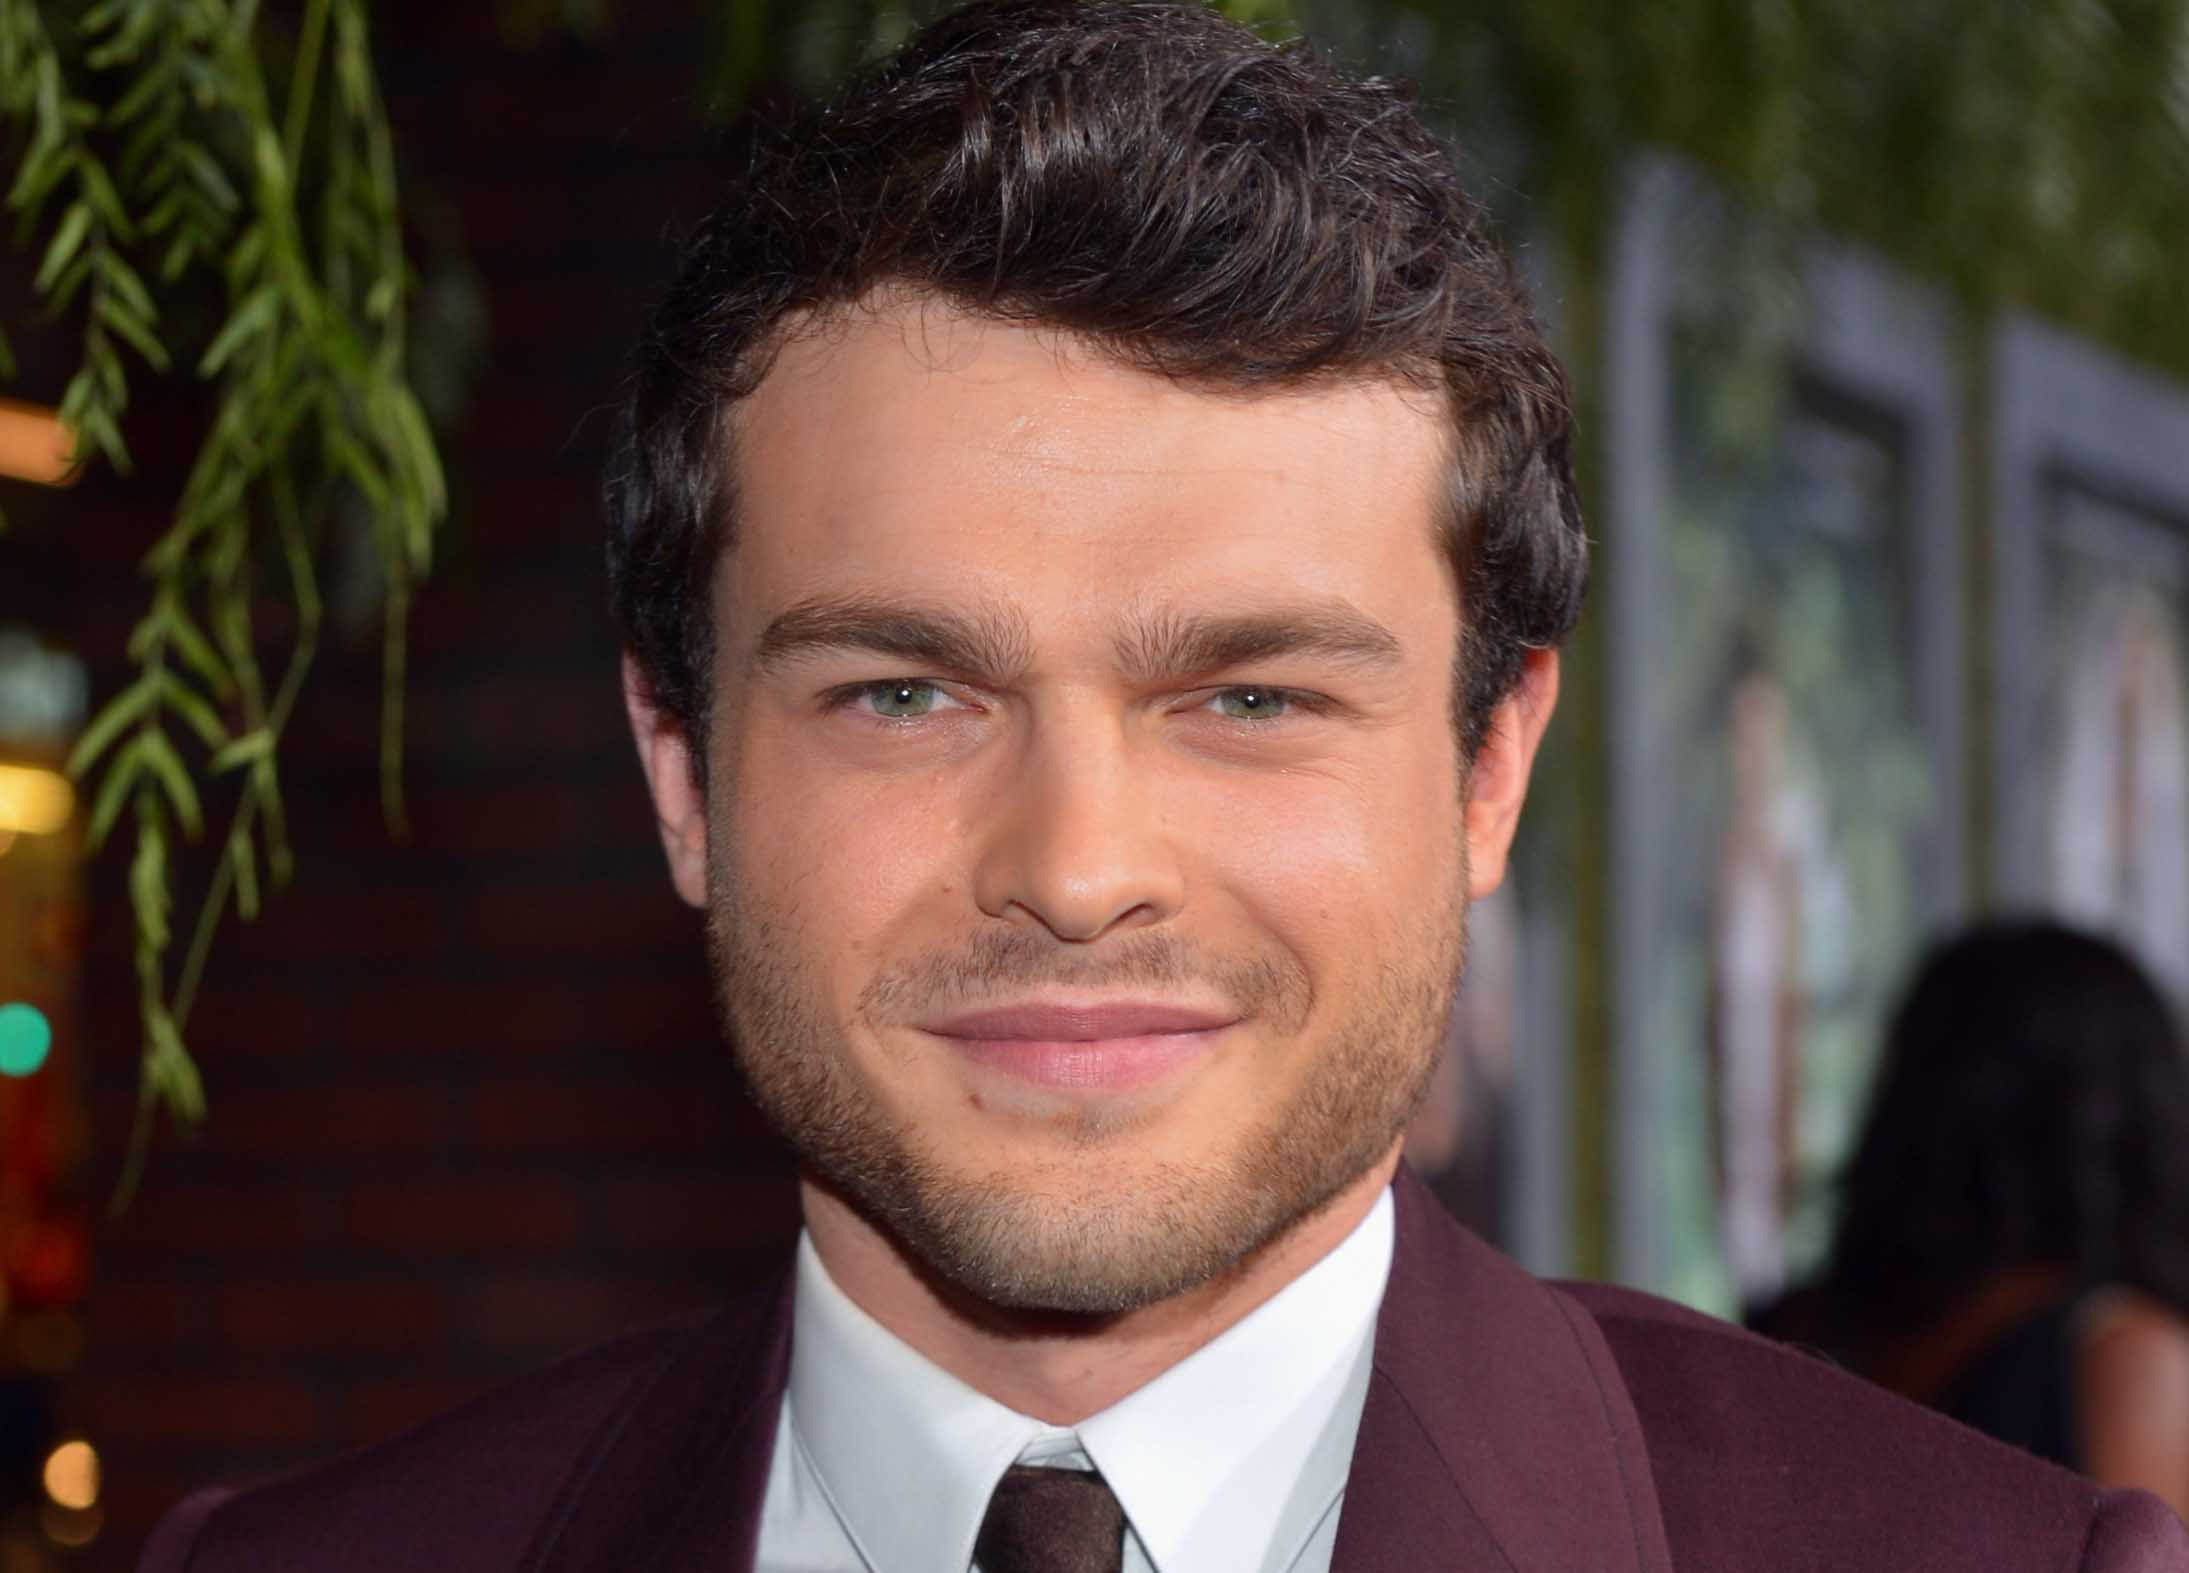 Alden ehrenreich set to play han solo in new star wars for The alden